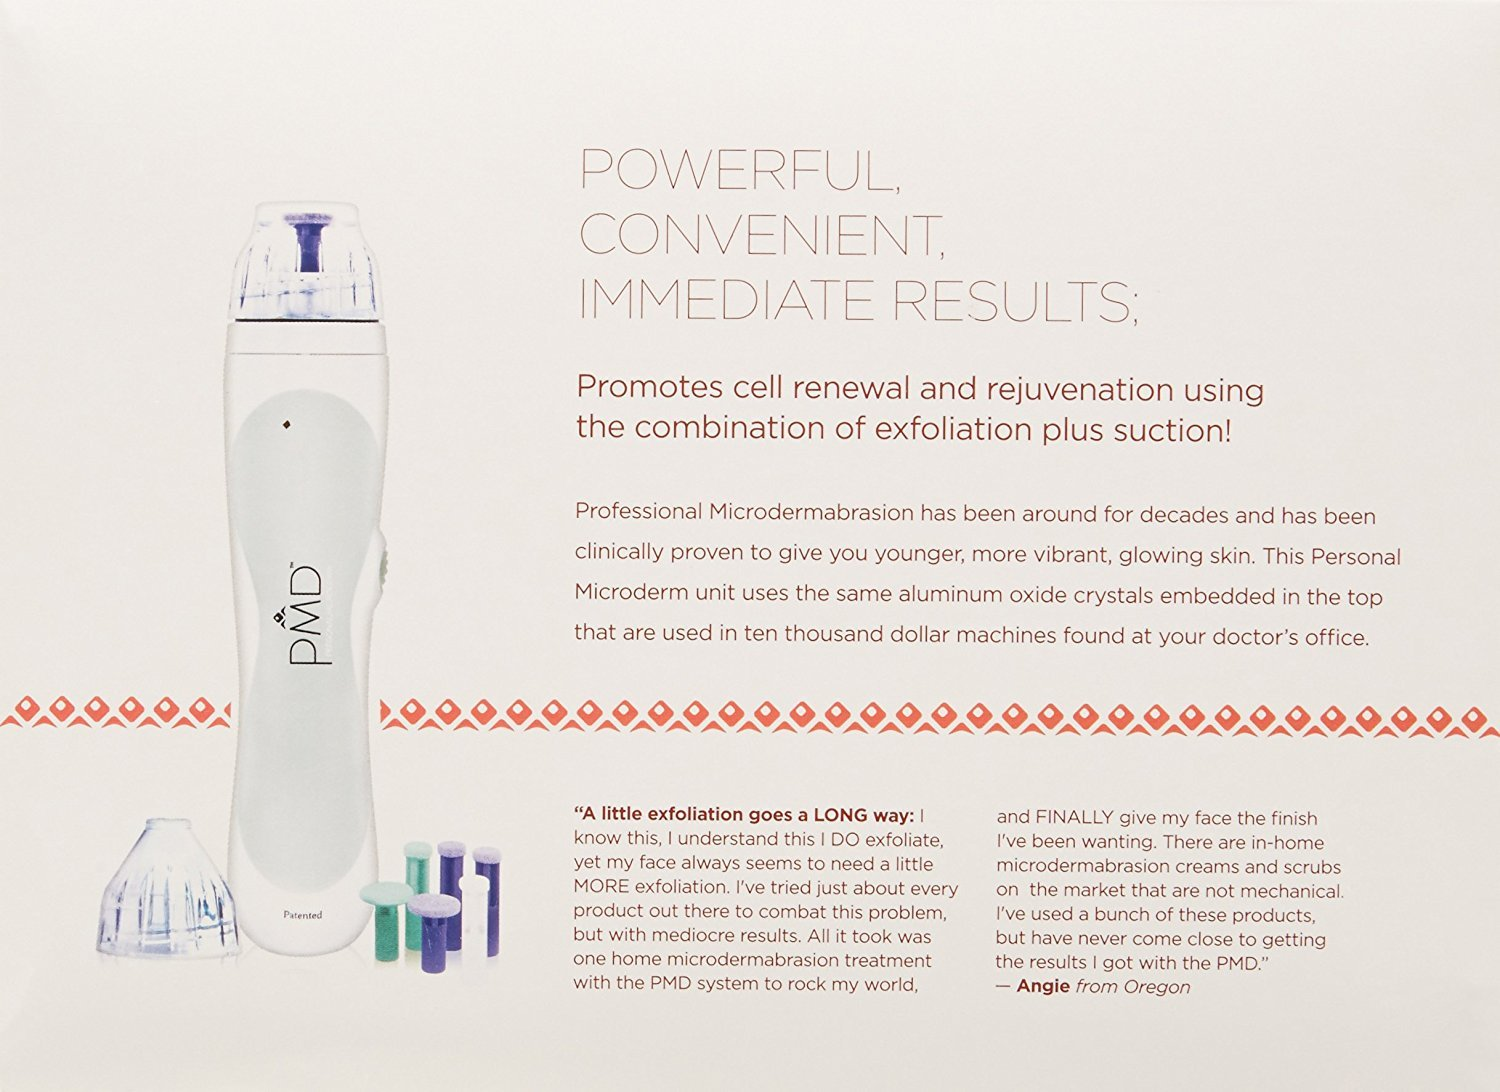 Buy Pmd Personal Microderm Microdermabrasion Online At Low Prices In